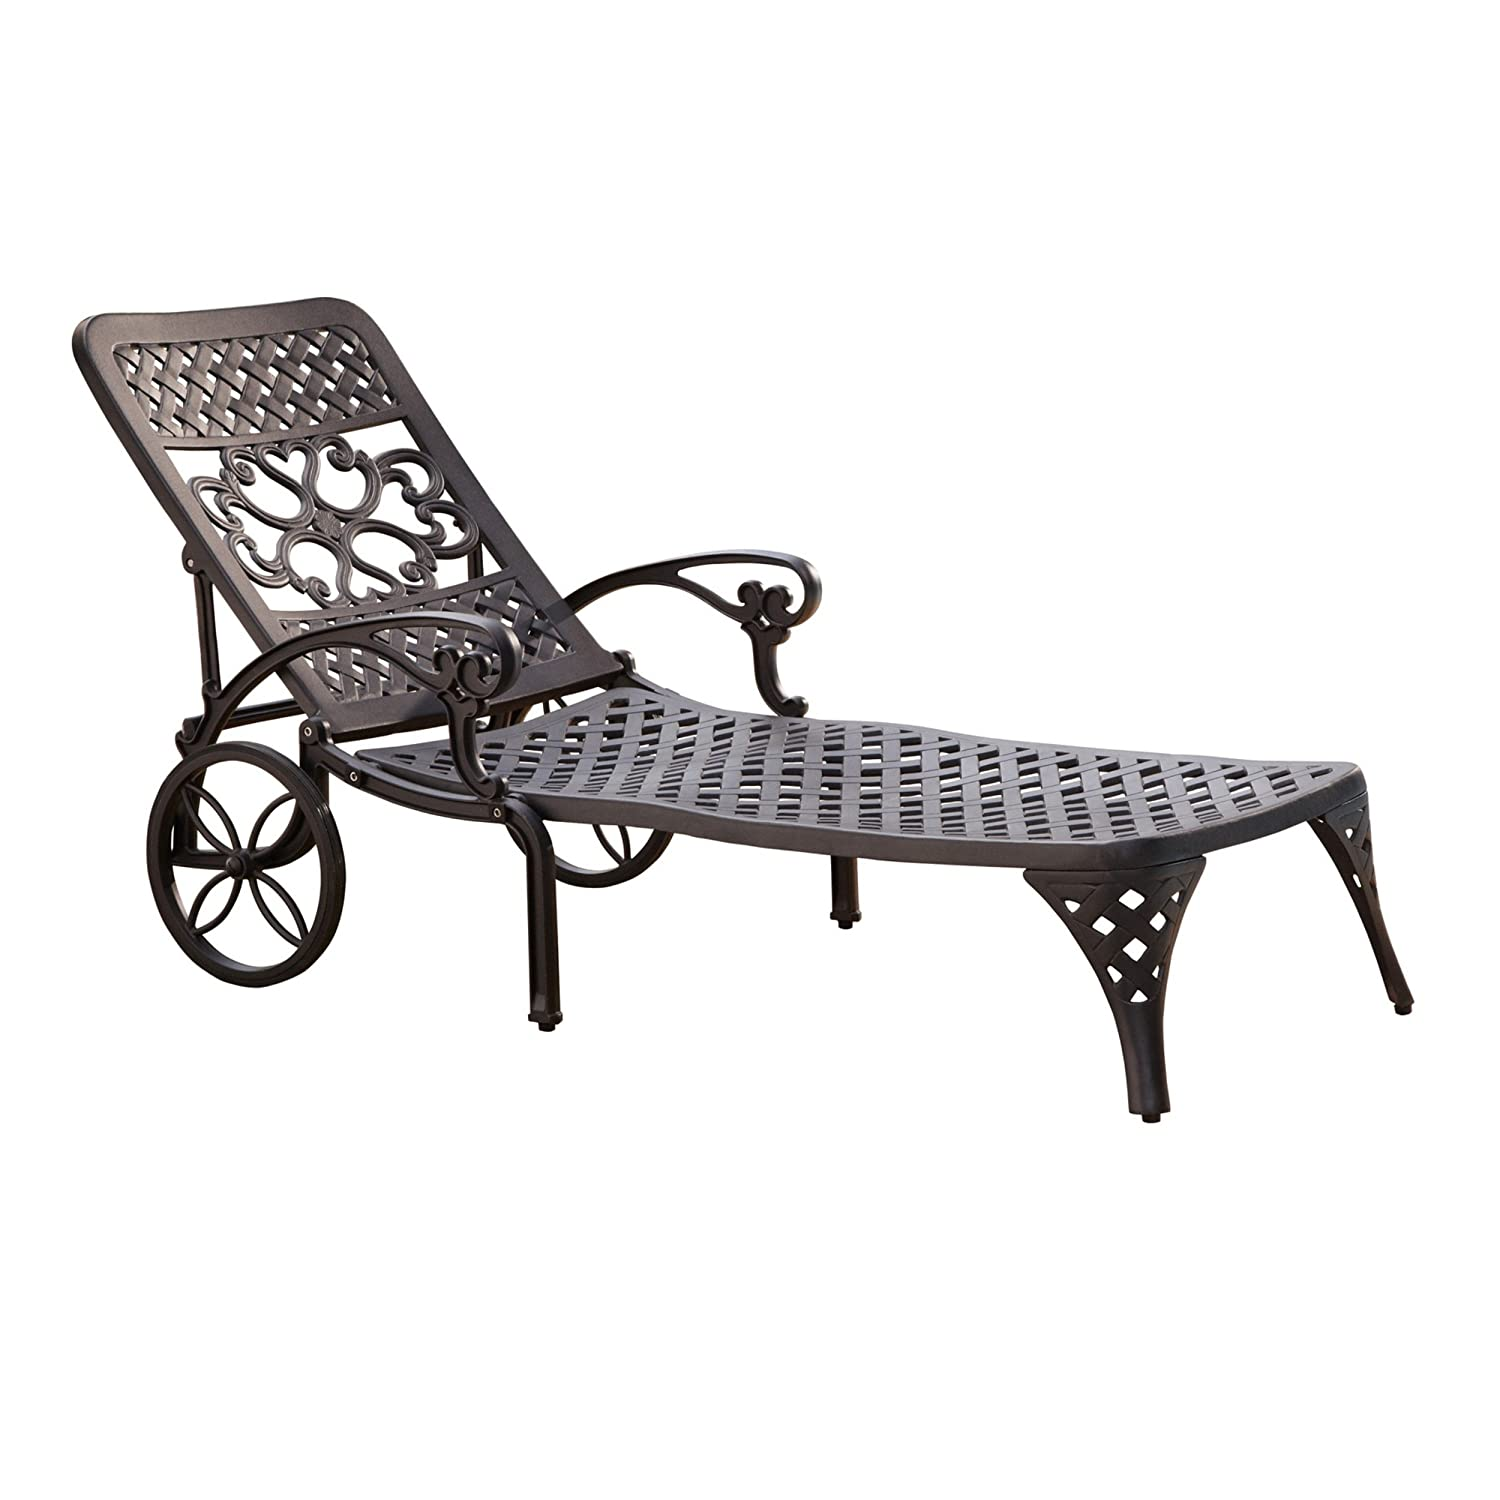 Amazon.com  Home Styles Biscayne Chaise Lounge Chair Black  Patio Lounge Chairs  Garden u0026 Outdoor  sc 1 st  Amazon.com : chaise lounges for patio - Sectionals, Sofas & Couches